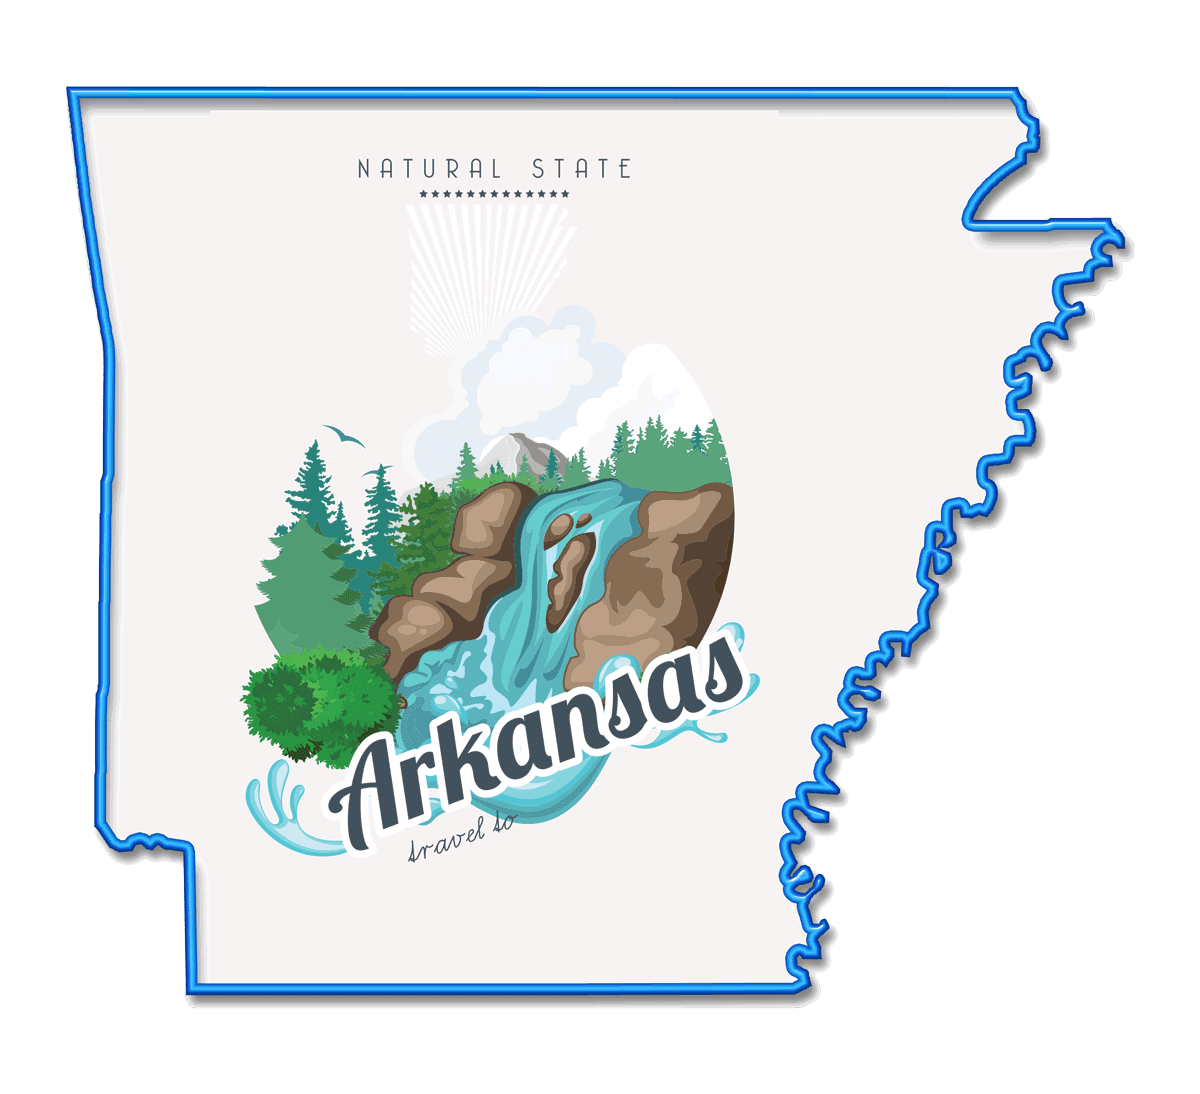 Arkansas Invites You To The 2017 National Festival